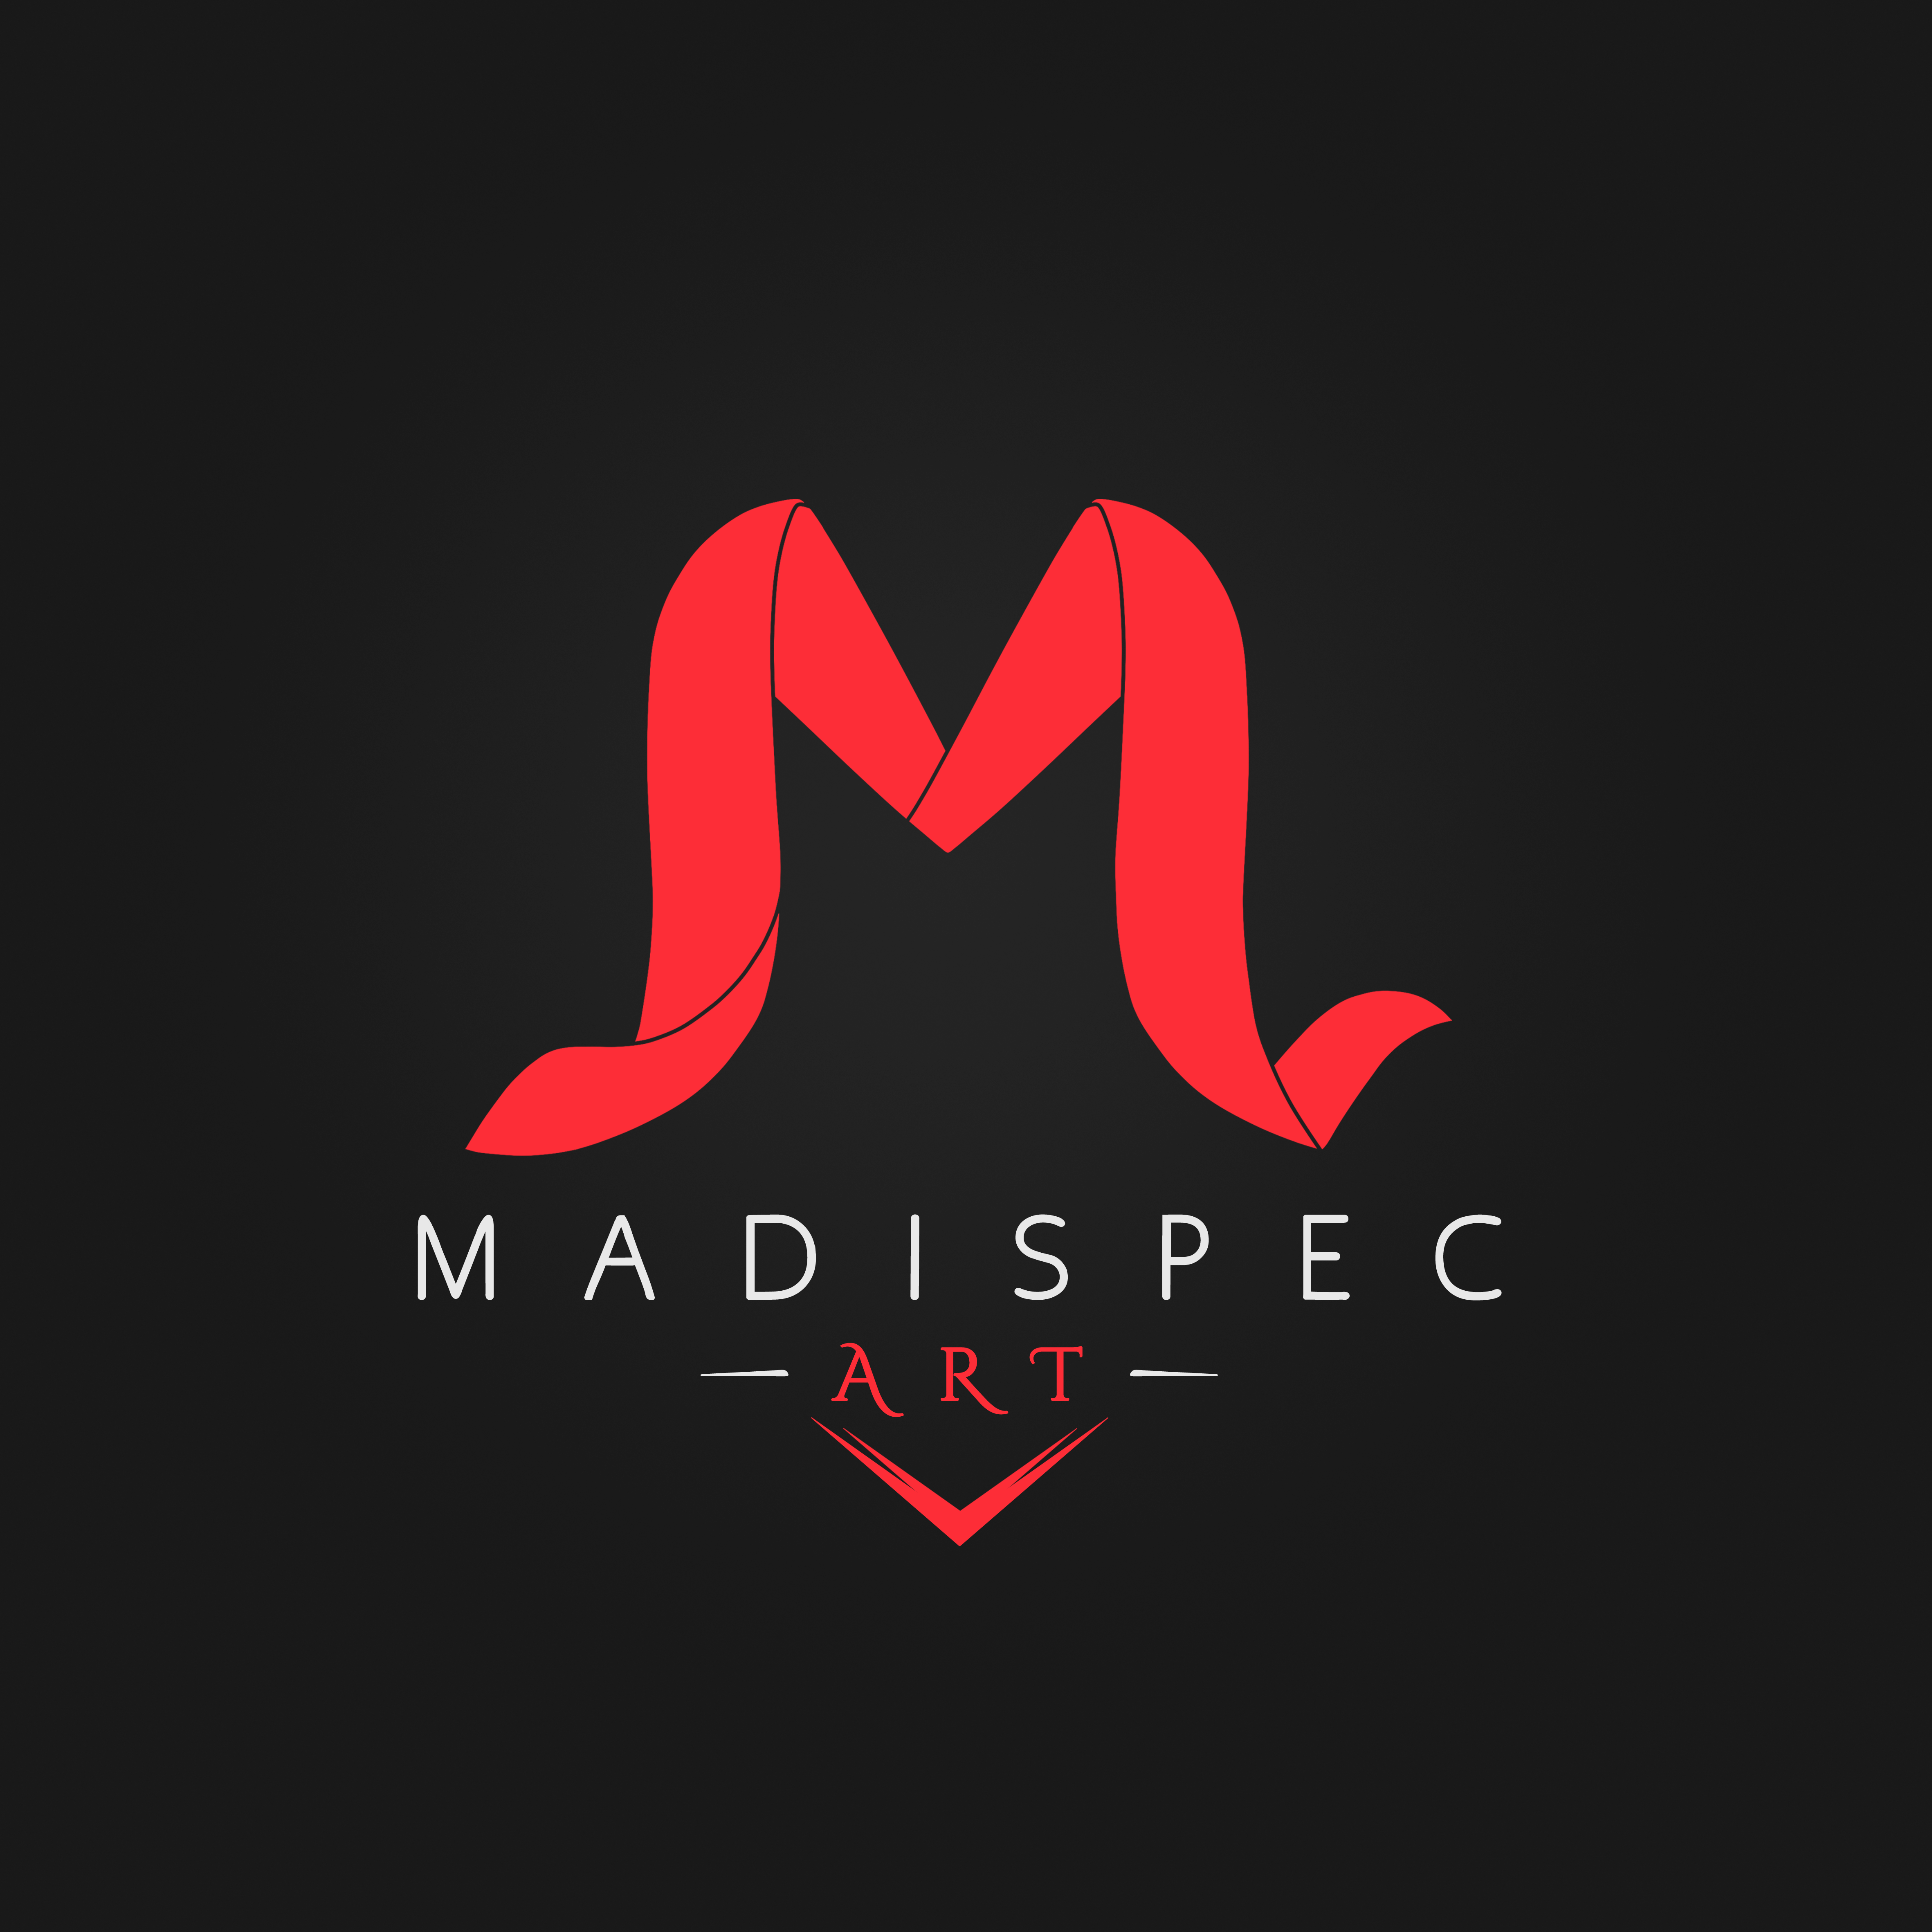 Pin oleh Madispec.art di Logo Design